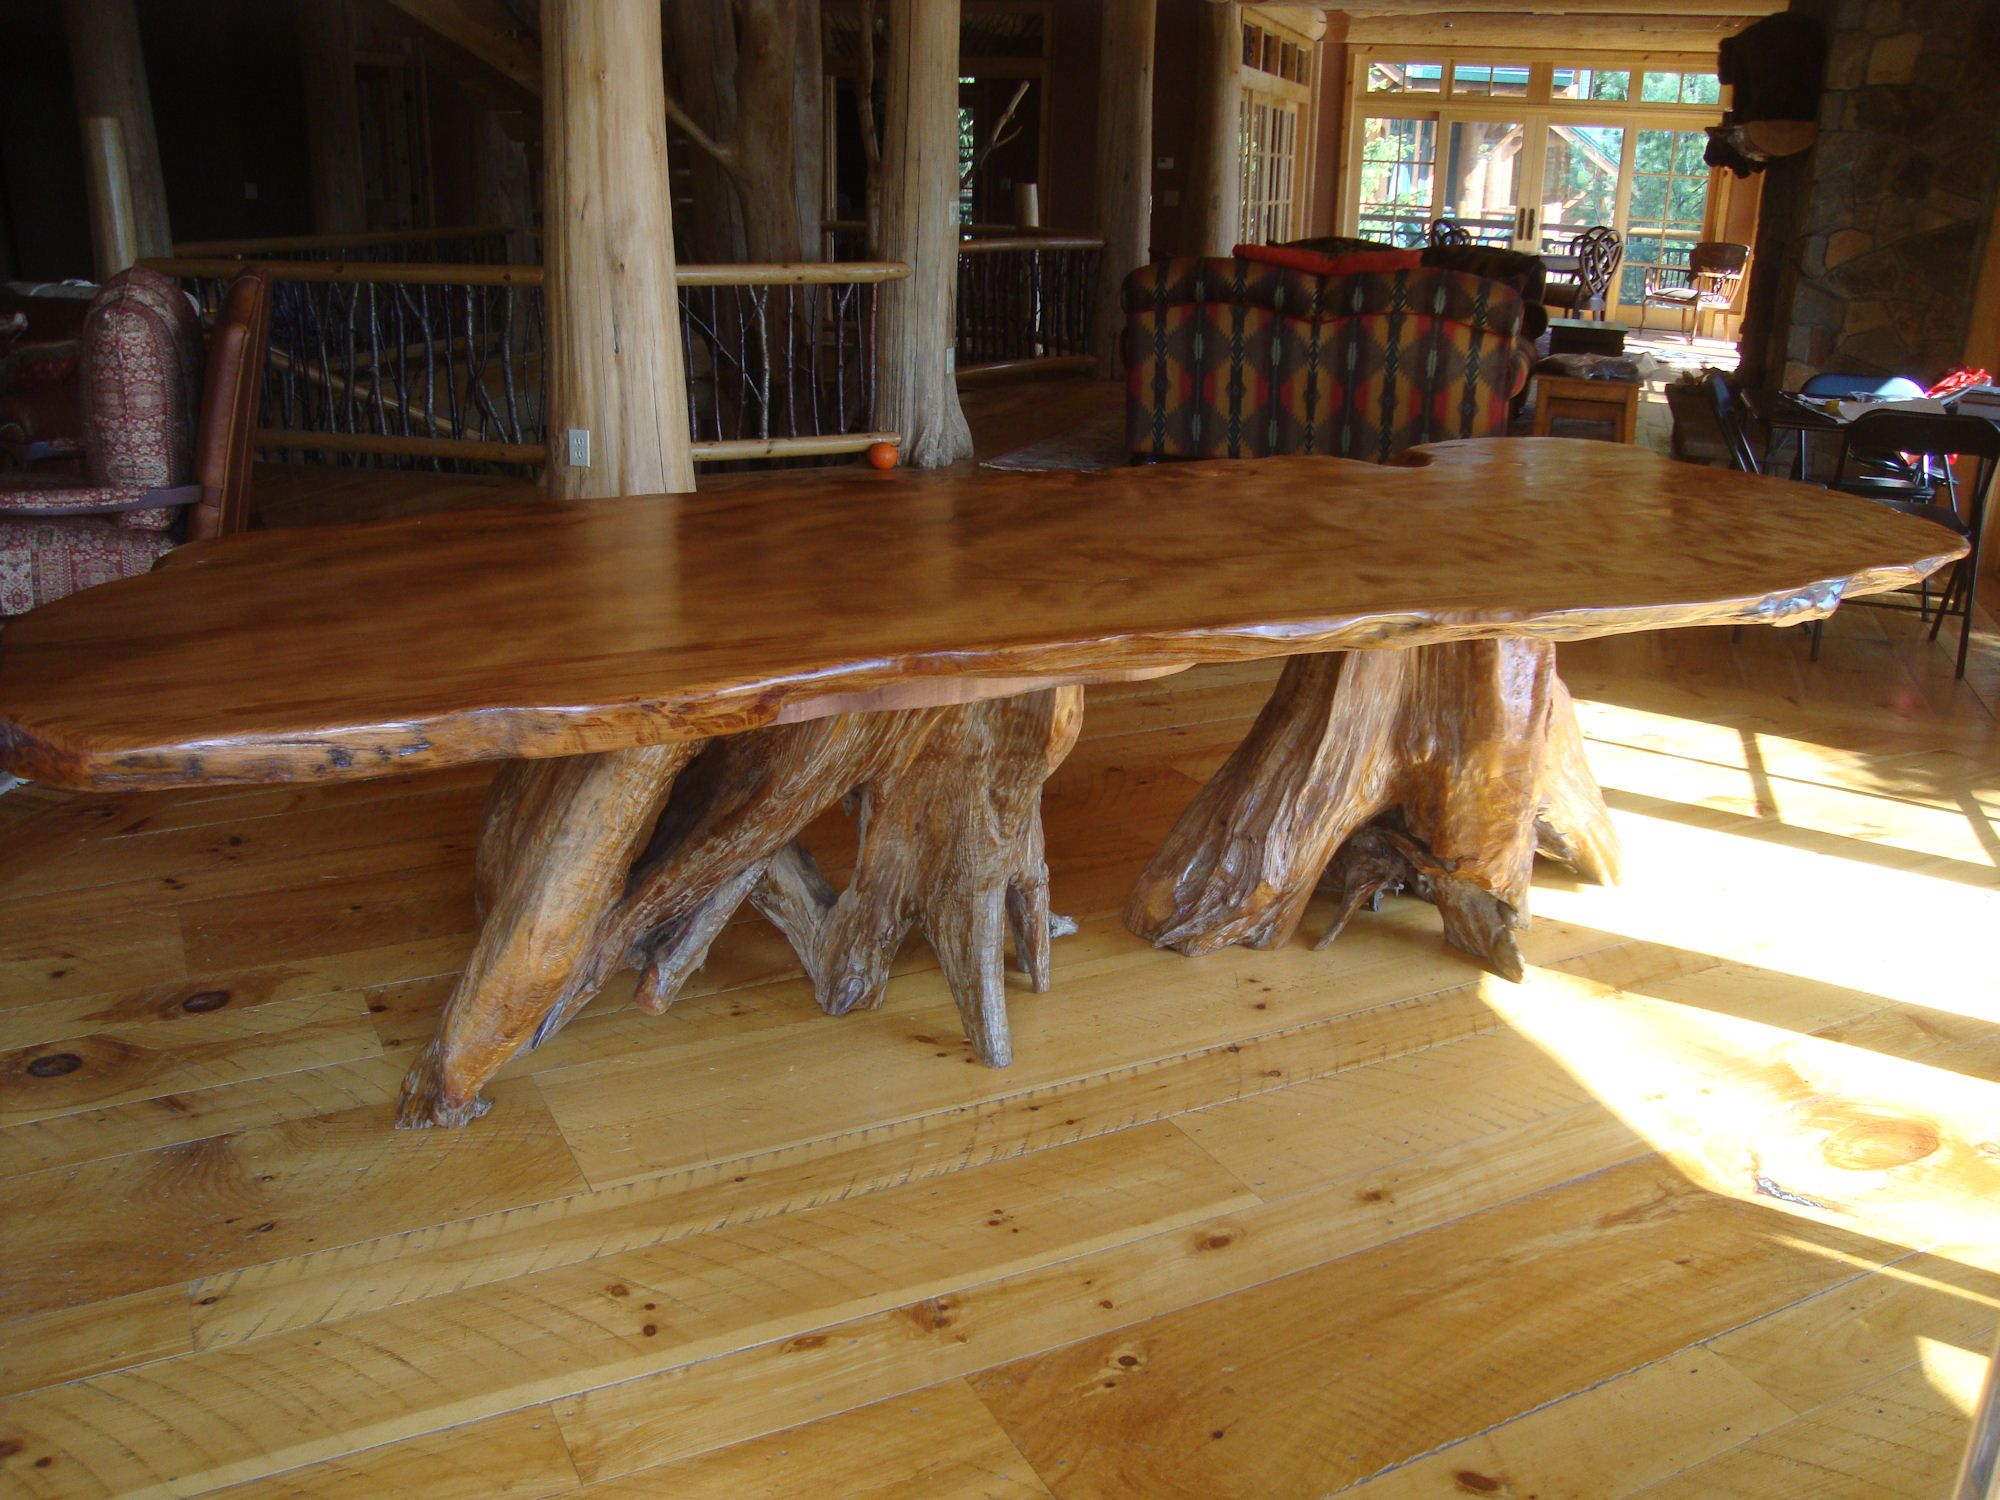 a rustic | this old growth redwood rustic dining table features a